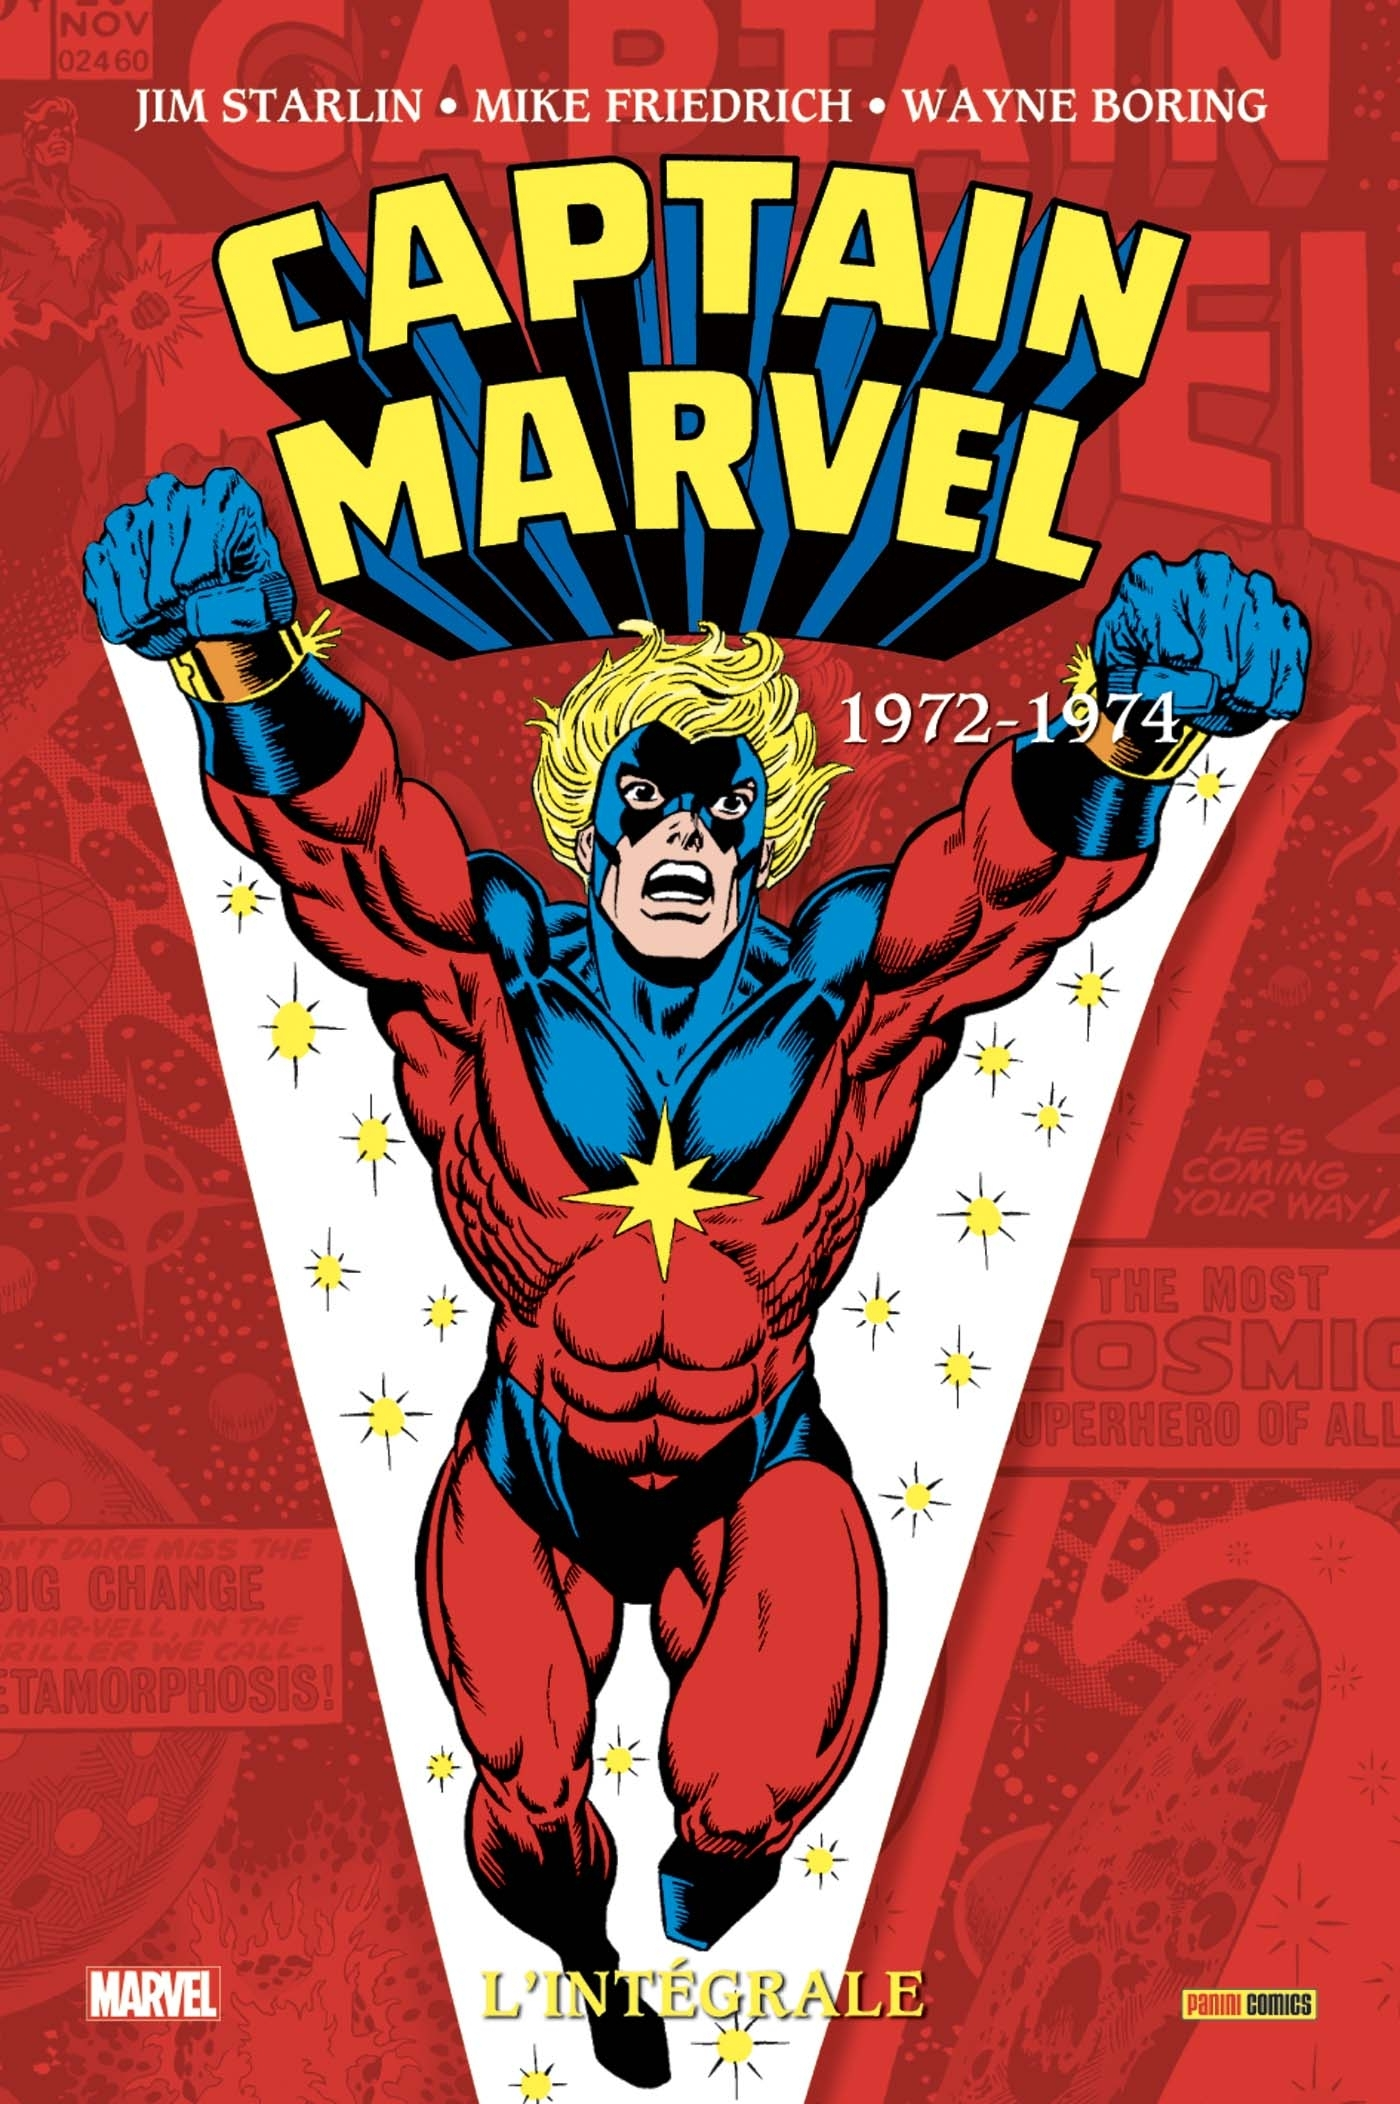 CAPTAIN MARVEL: L'INTEGRALE 1972-1974